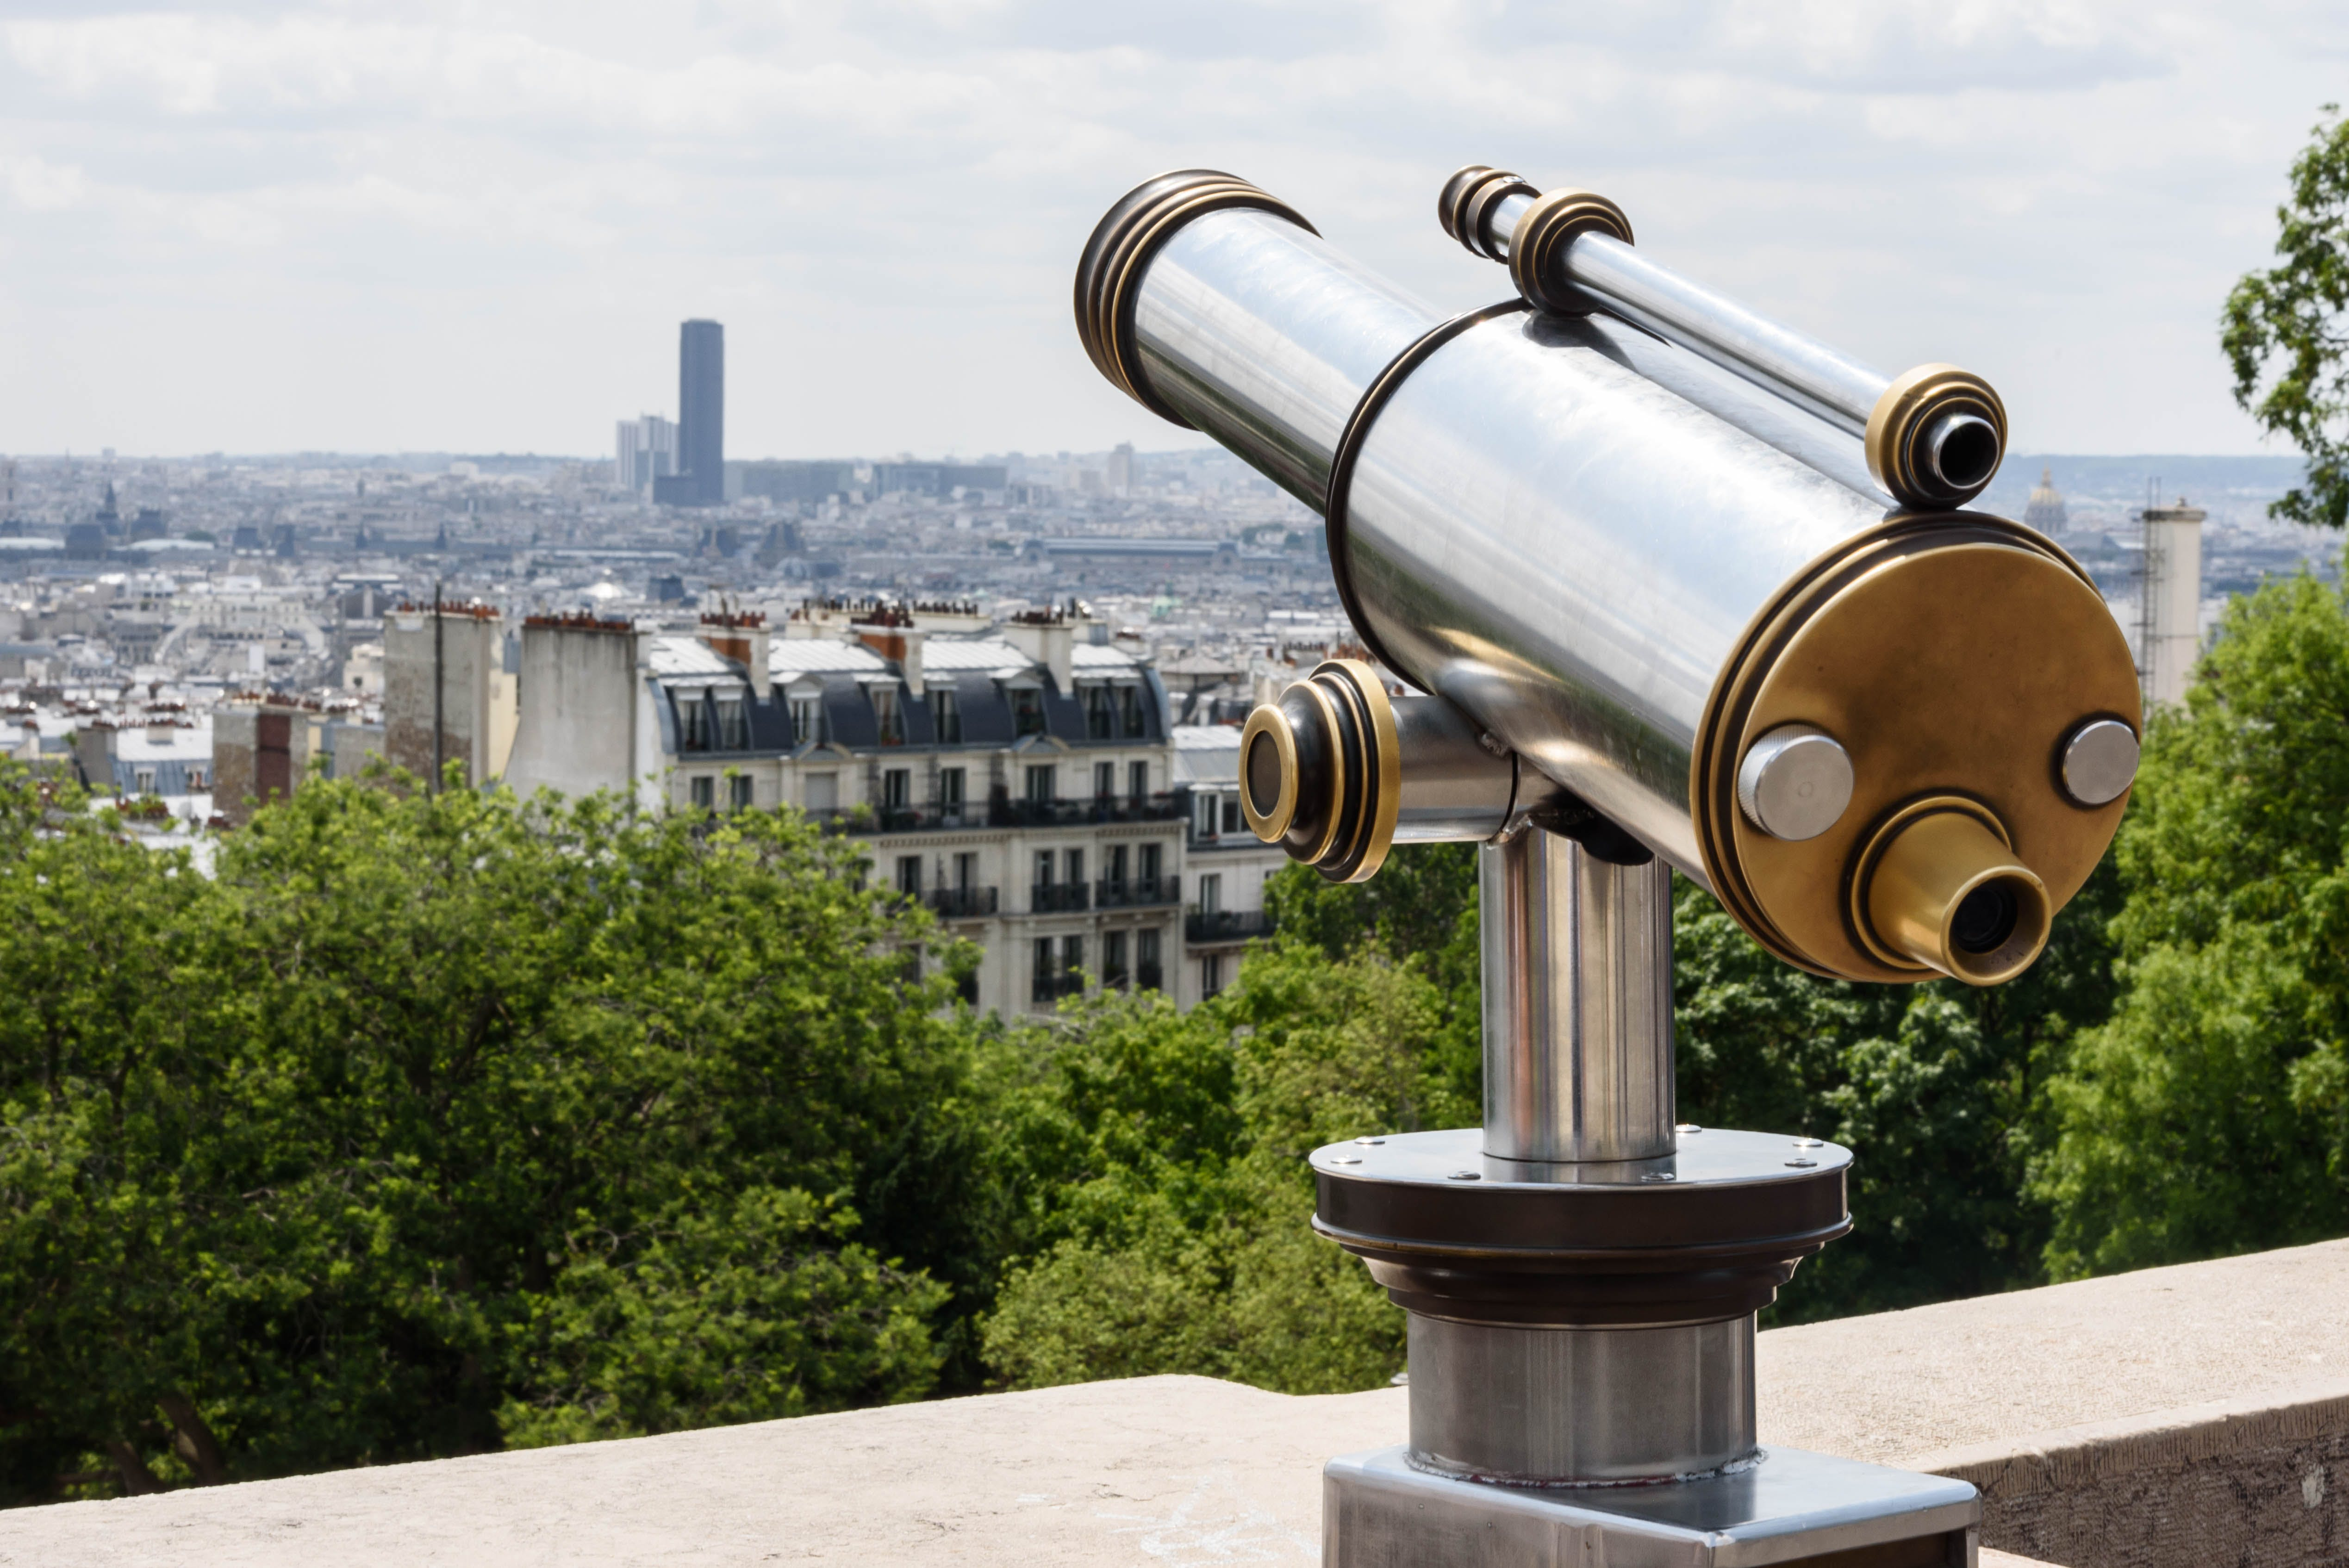 Gray and Brown Tower Telescope Near Trees and High Rise Buildings